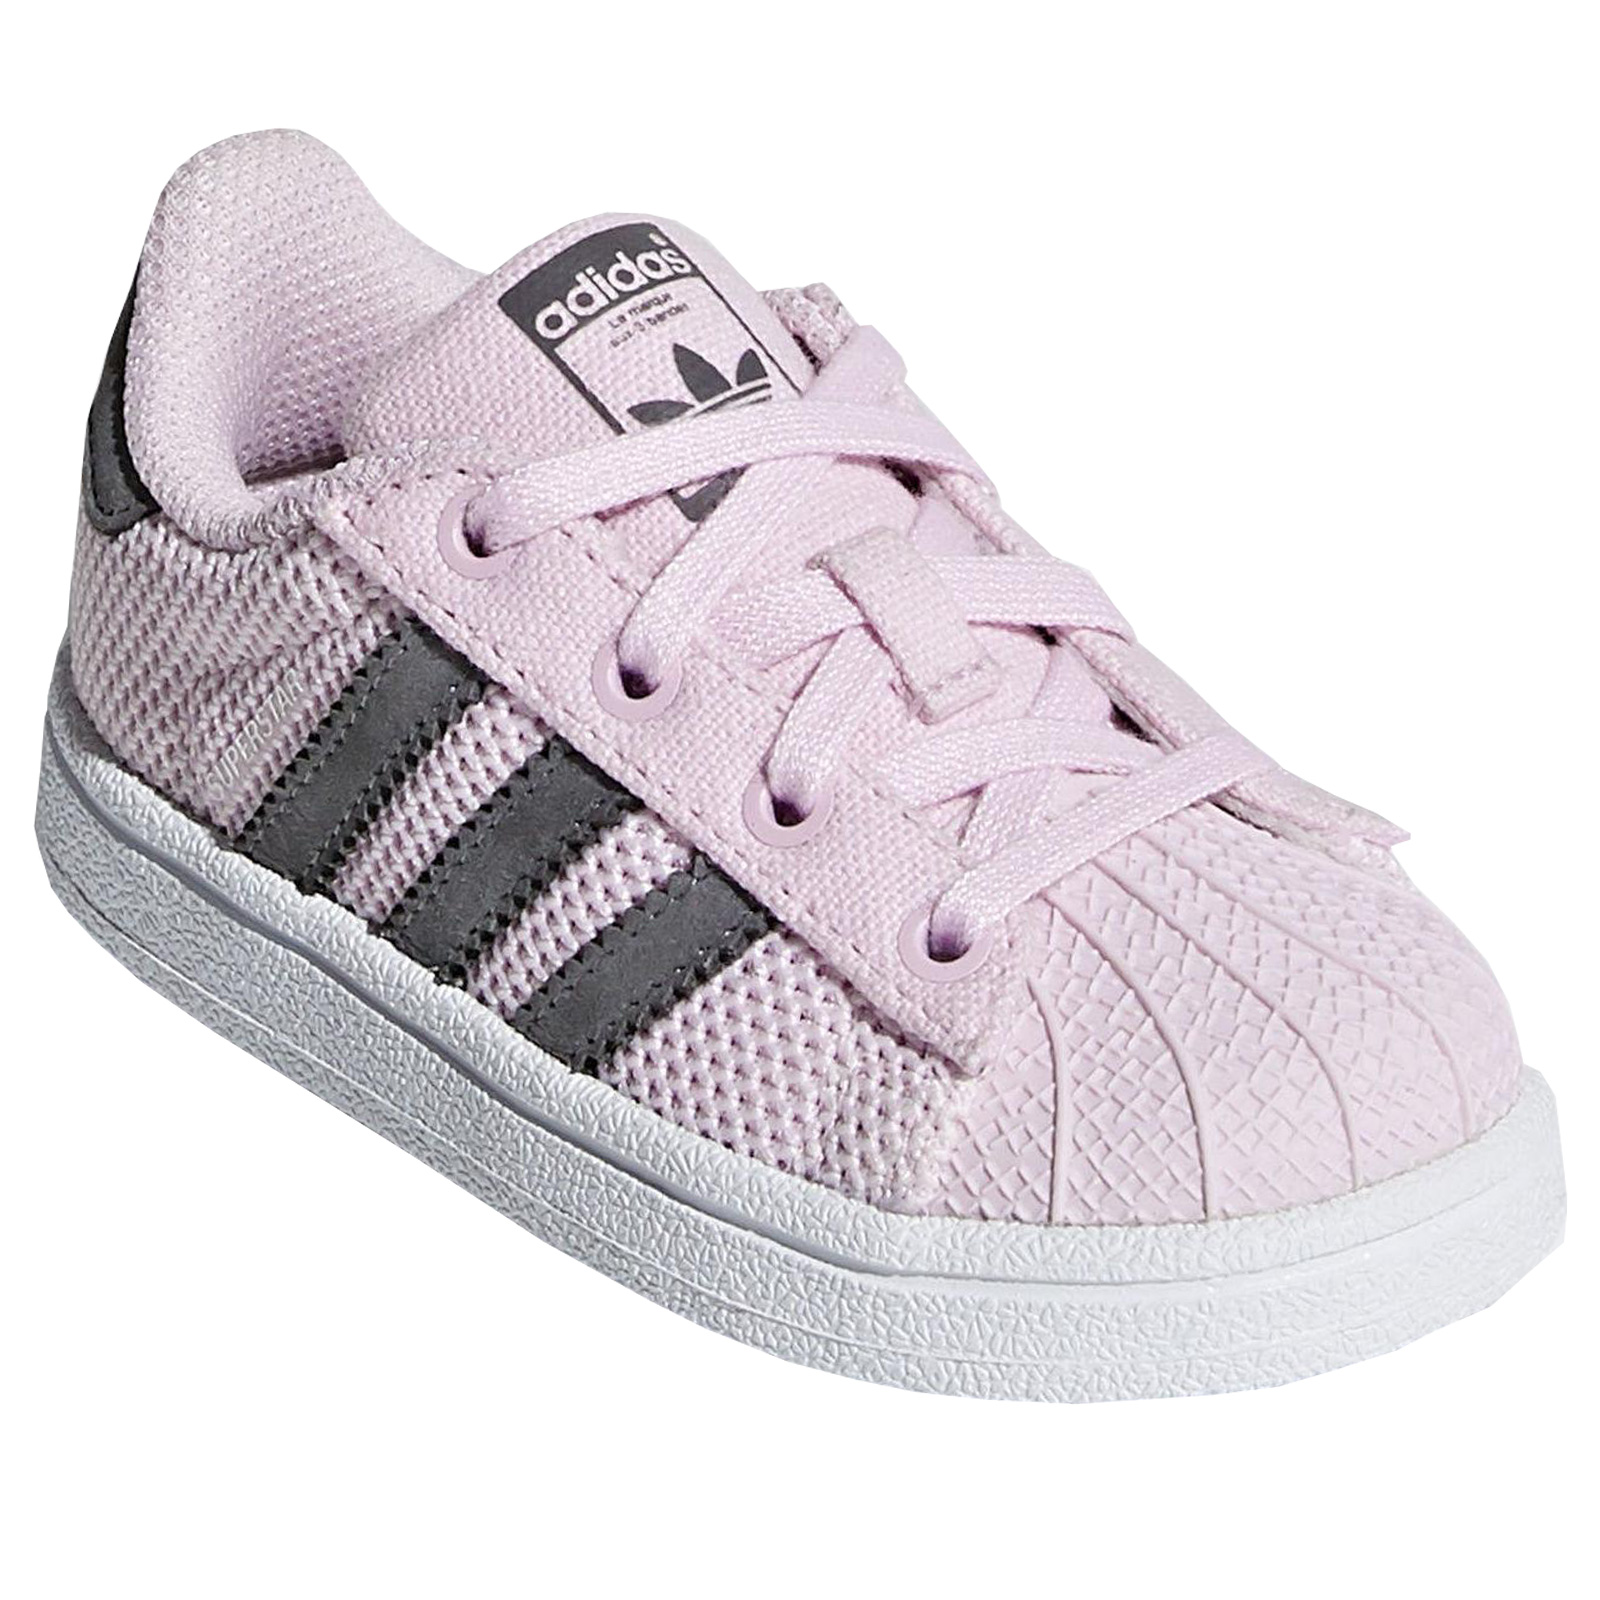 half price cheapest clearance sale adidas Originals Superstar Mädchen Kinder Schuhe Turnschuhe Flieder Rosa  CQ2862